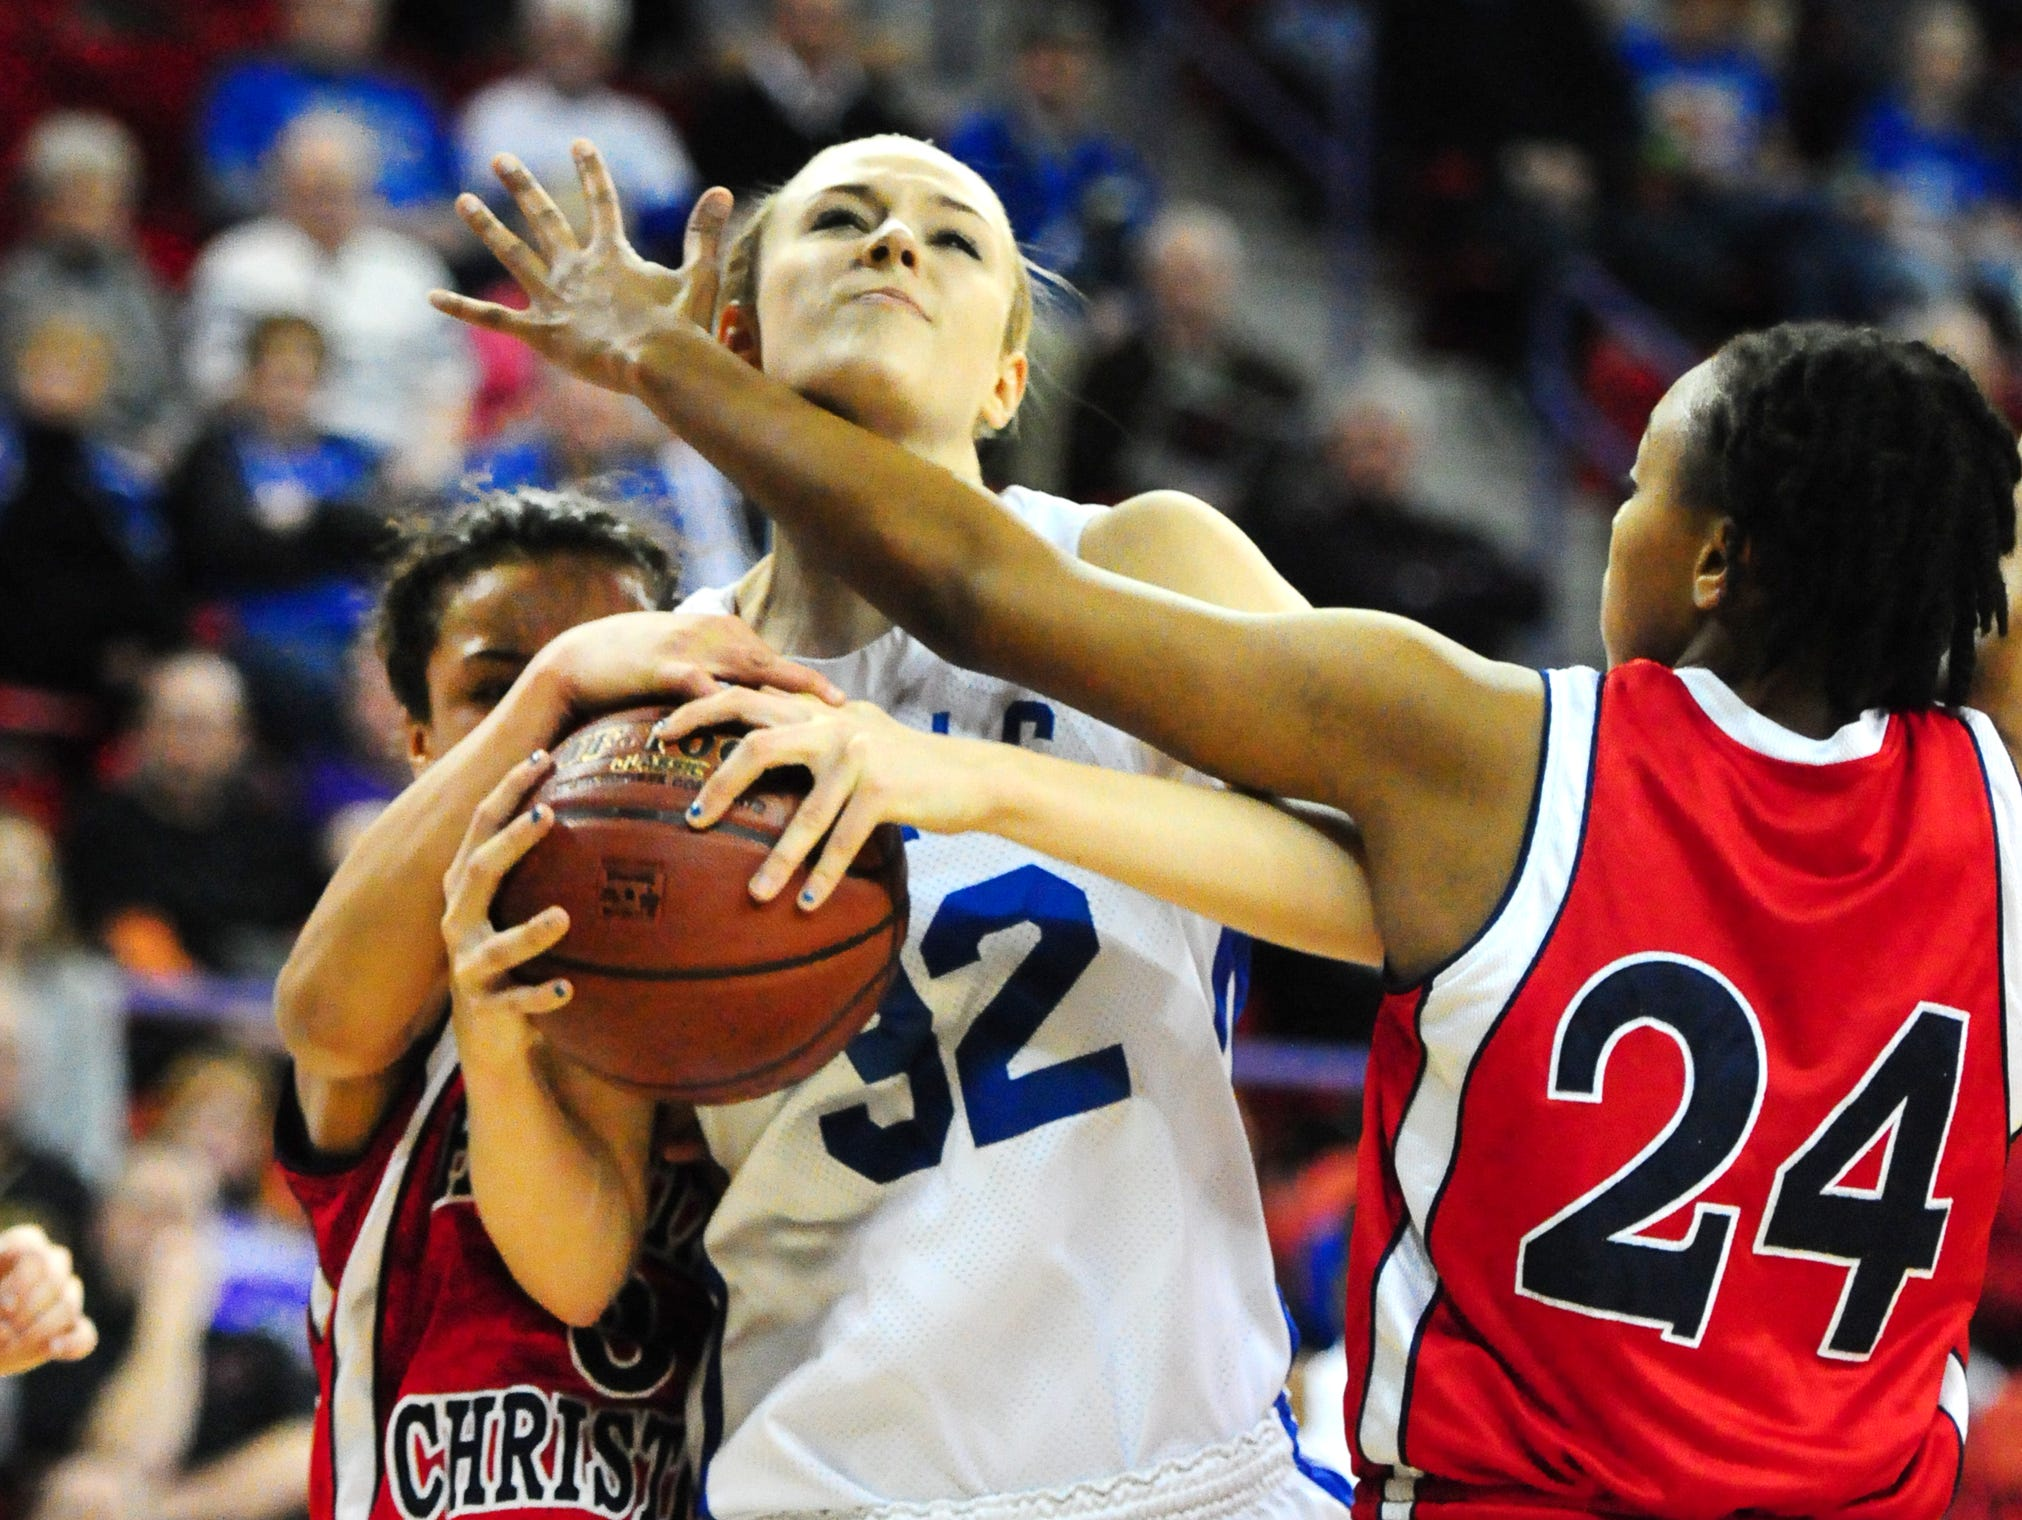 Assumption's Gena Grundhoffer is guarded during a WIAA Division 5 state semifinal against Heritage Christian last season. The Royals have earned a No. 1 seed for this year's postseason